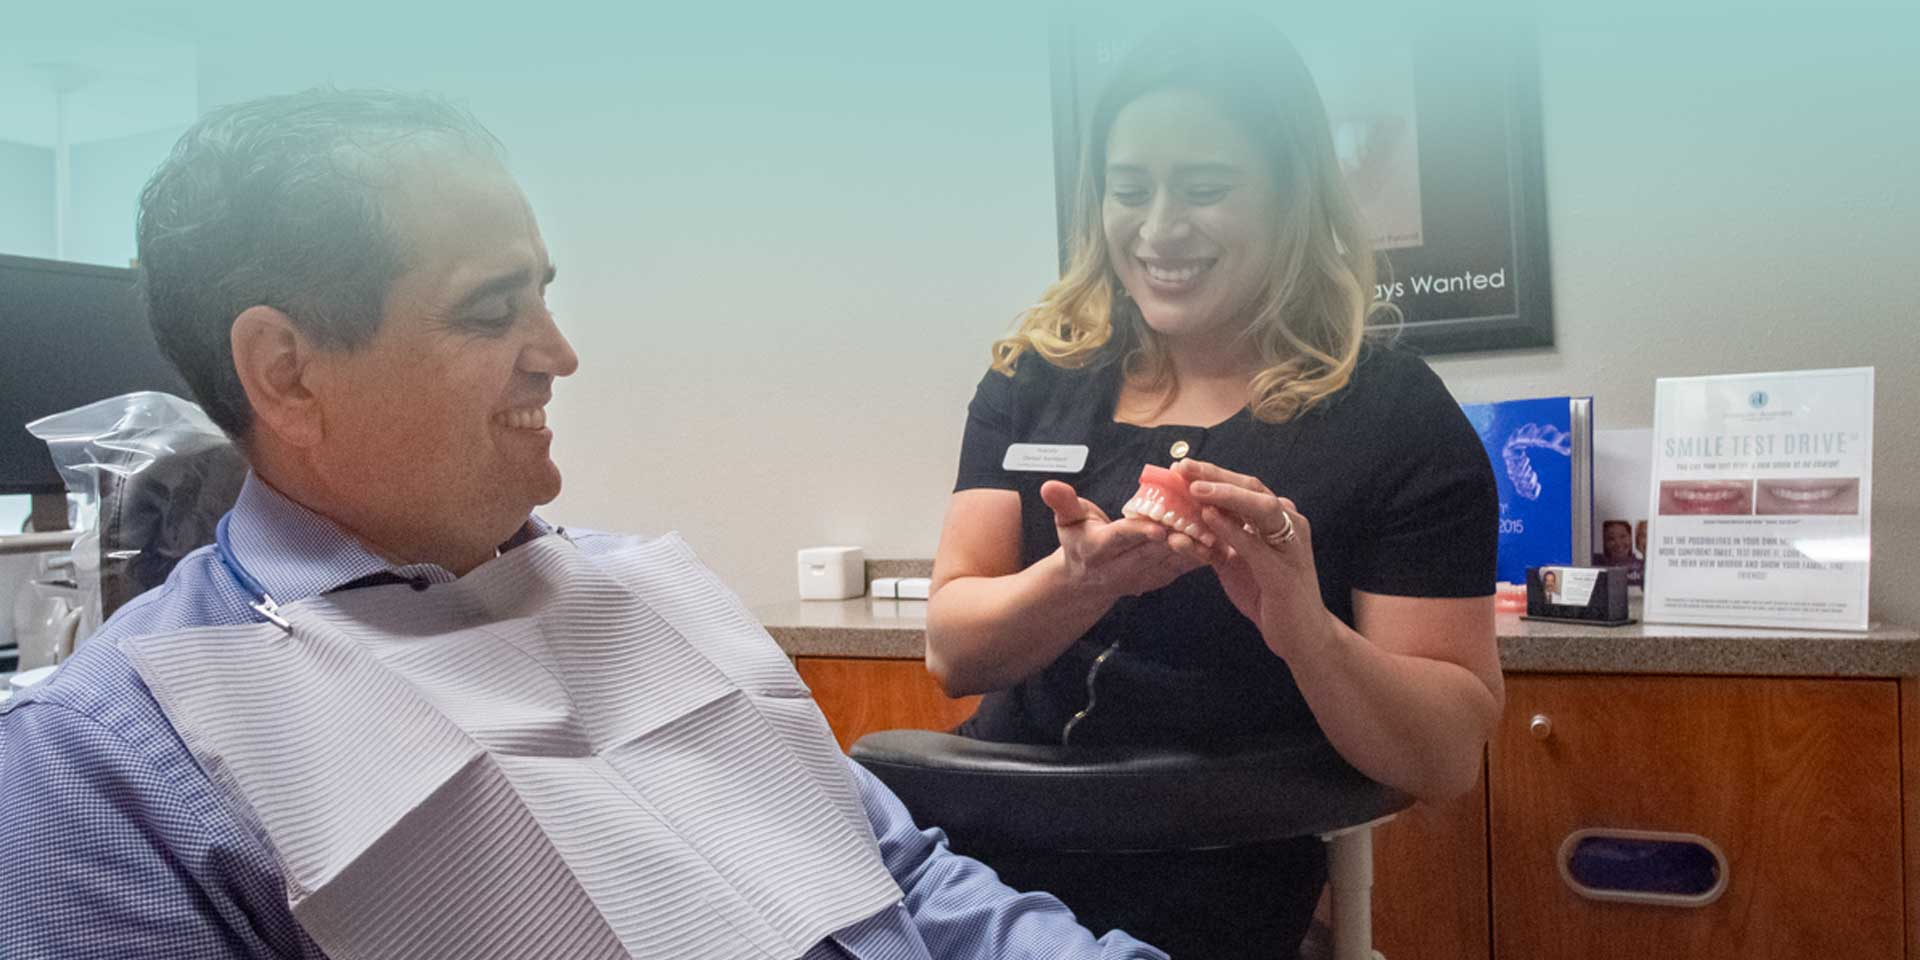 A patient at Cosmetic Dentistry of San Antonio smiling with dental assistant